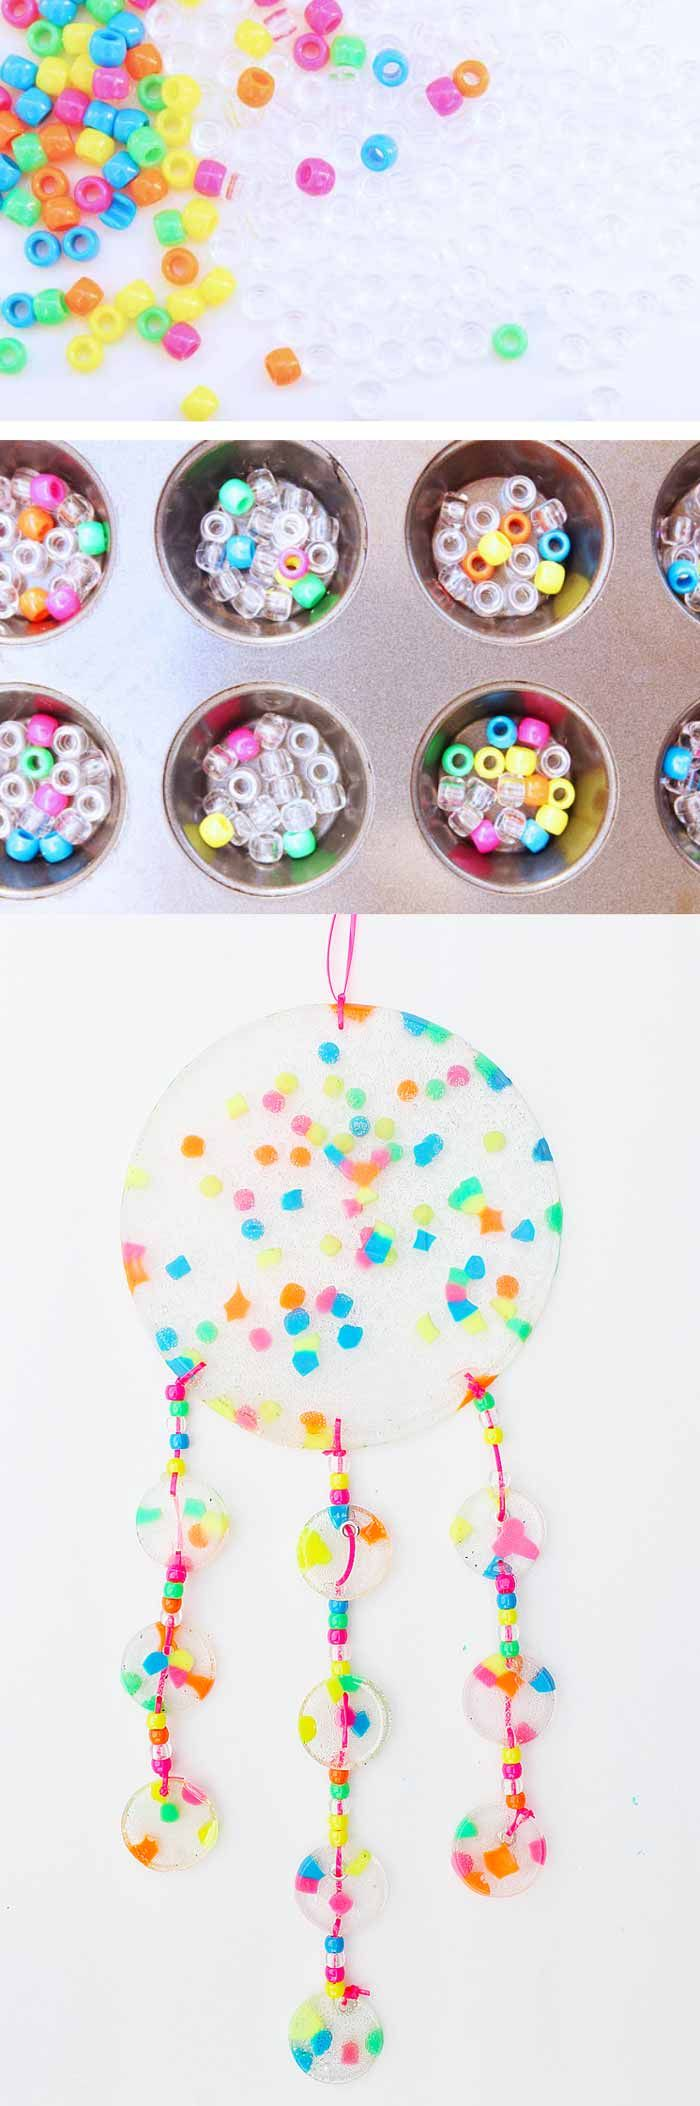 Make Dreamy Suncatchers for Kids - These are beautiful!